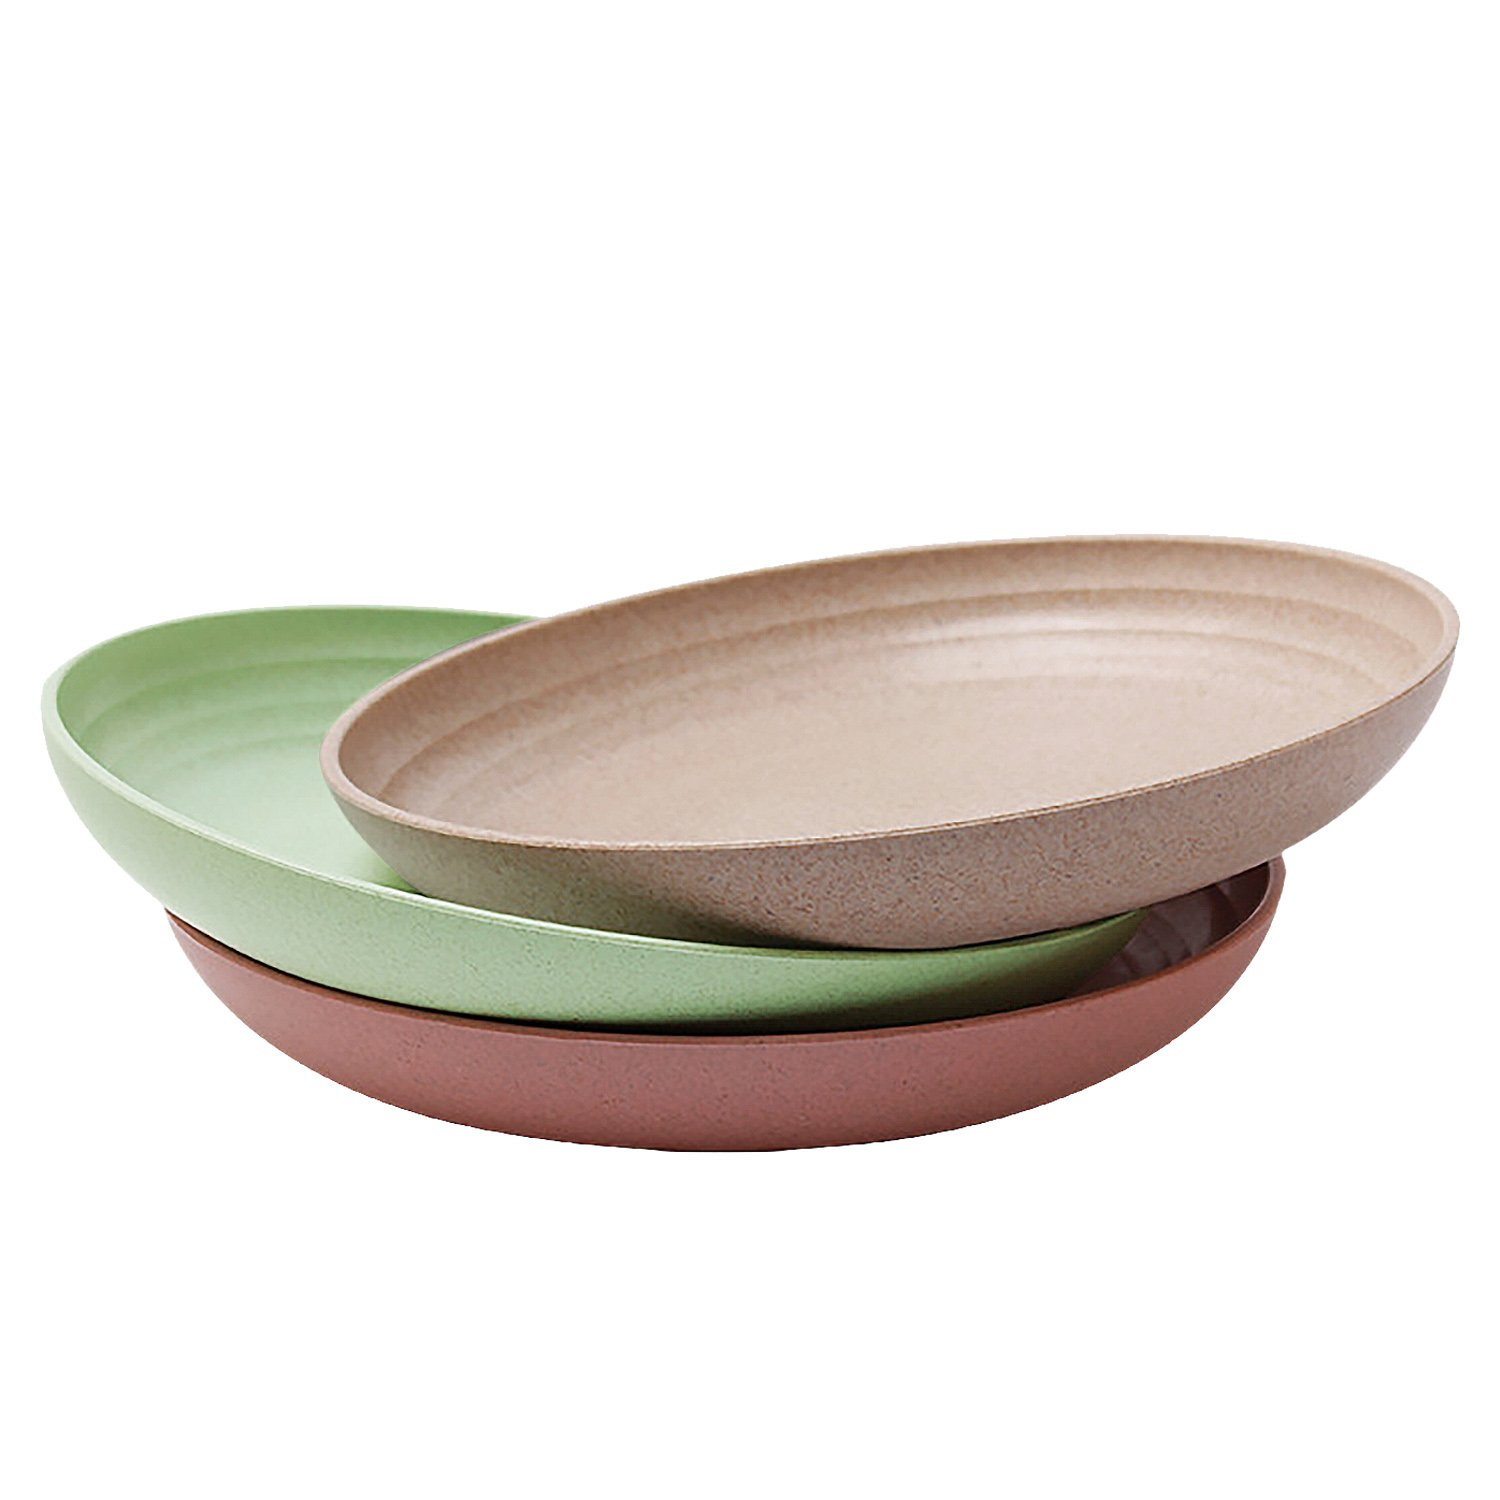 """3 Pack Lightweight Wheat Straw Plates 7.87"""", iTavah Unbreakable Plates Set, Non-toxin Healthy Eco-friendly Dishes, Dinner Plates Dishwasher Safe Microwave Safe Tableware Dinnerware"""